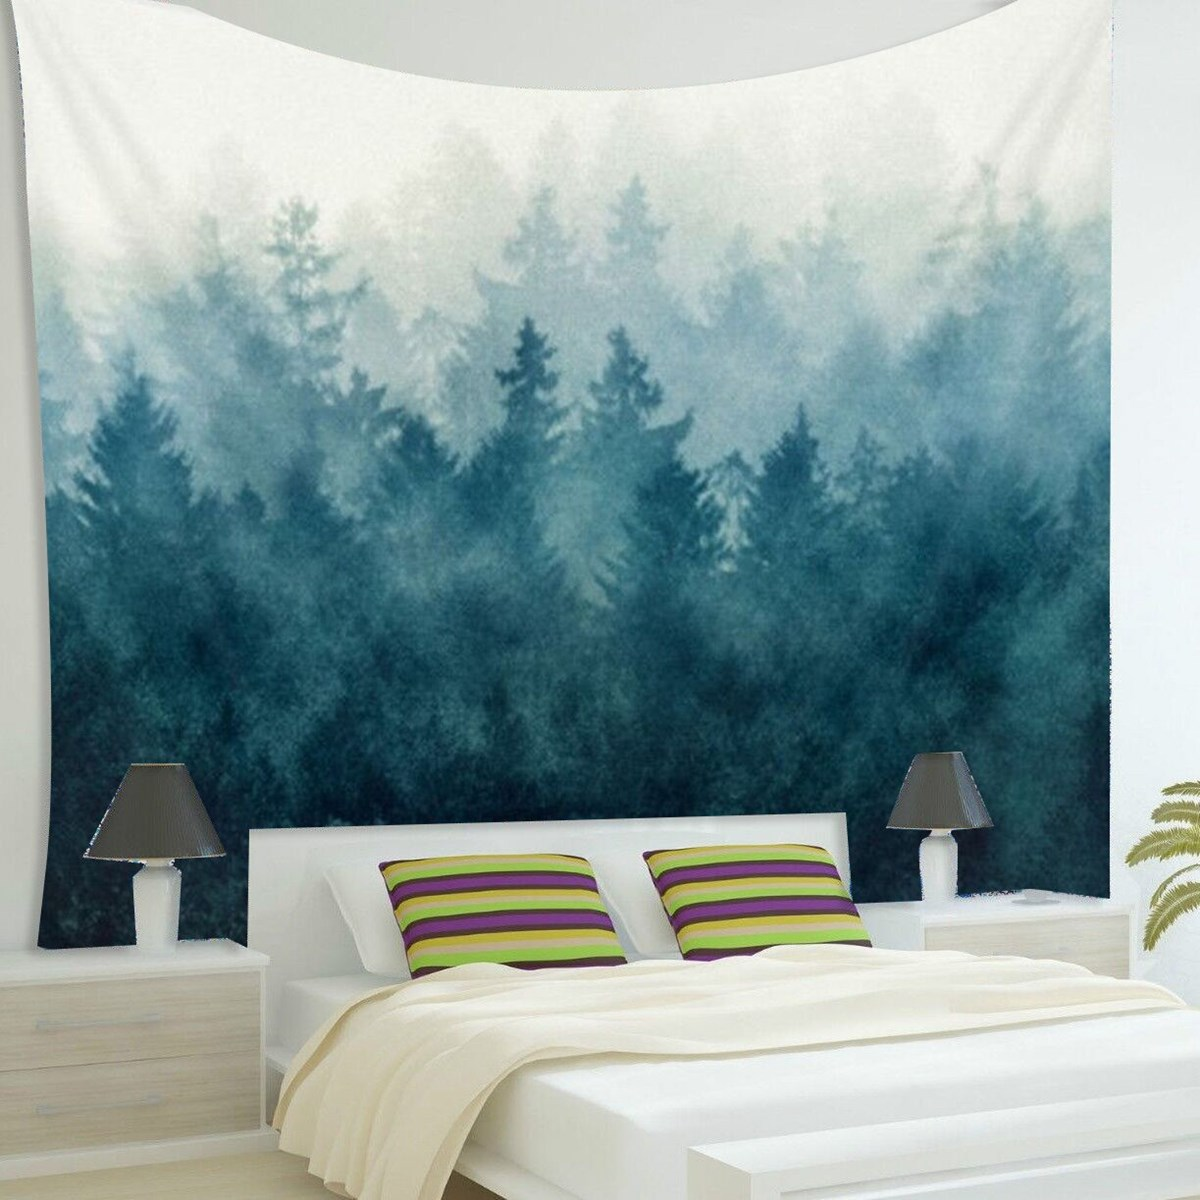 Hanging Rugs Online Get Cheap Wall Hanging Rugs Aliexpresscom Alibaba Group